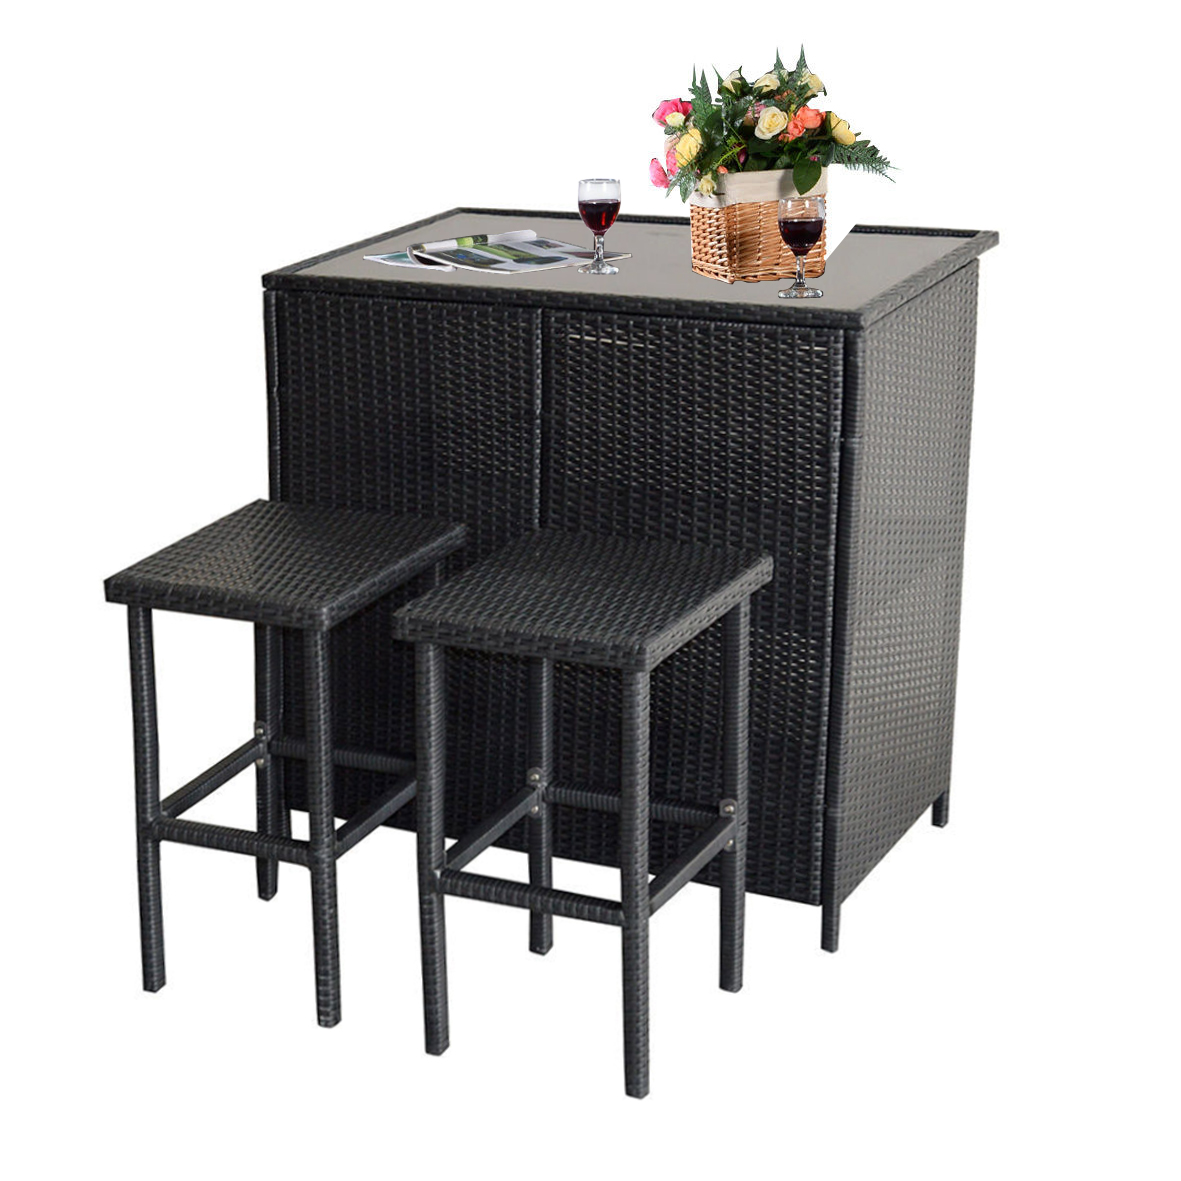 Black Bar Set: Mcombo 3PCS Black Wicker Bar Set Patio Outdoor Table & 2